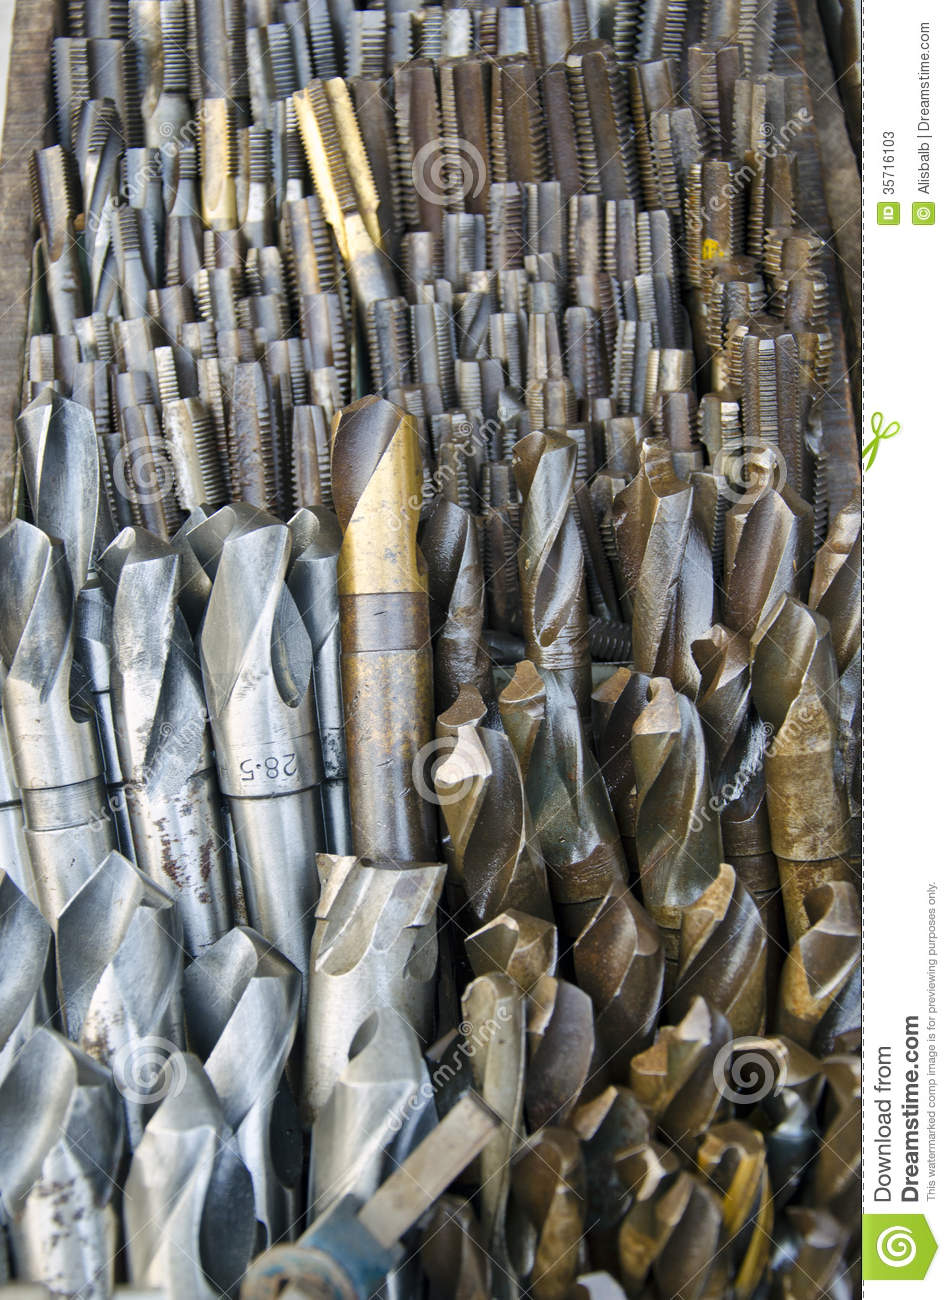 Steel Drill Bits Collection In Market Stock Image - Image ...